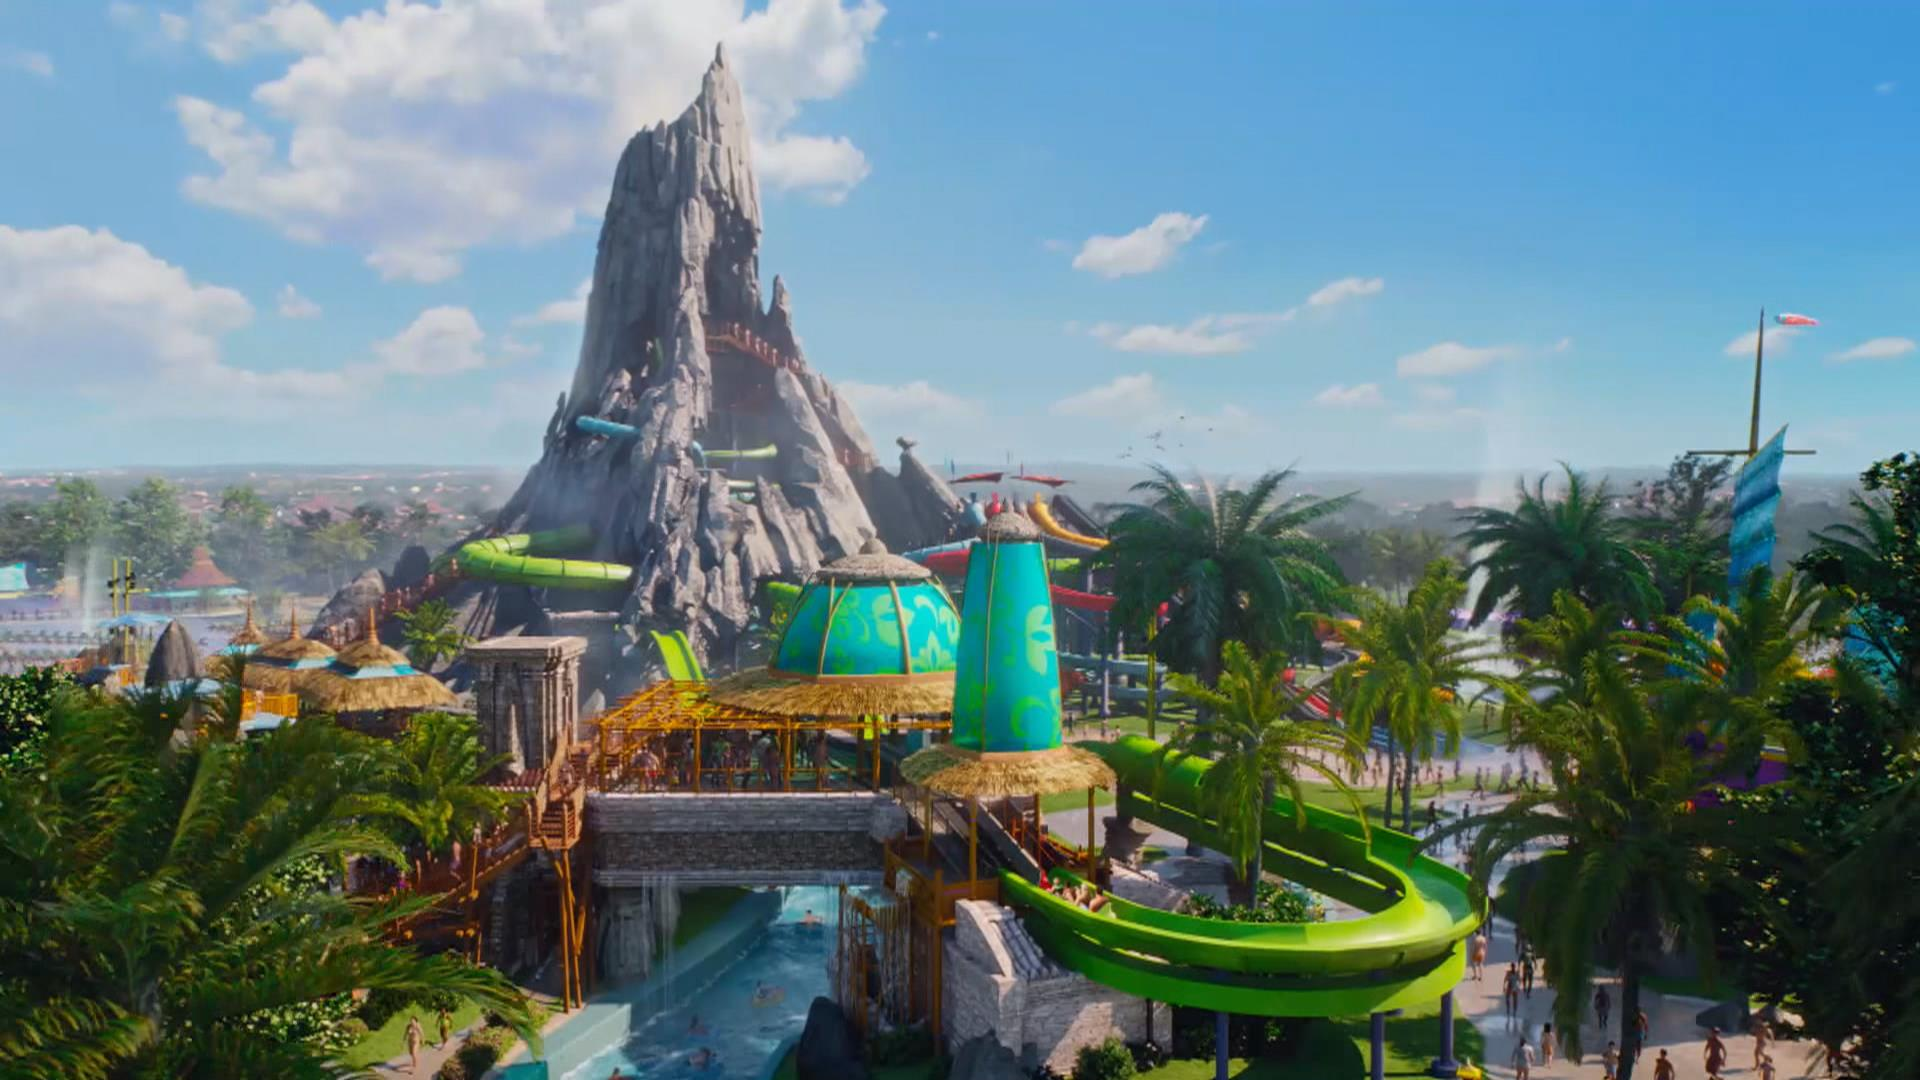 helicopter ride orlando with Today Will Attend Grand Opening Of Volcano Bay Universal S First Water Park 928122435869 on Harrison Ford Walks Unaided Time Heads Plane Following Ankle Injury Star Wars Set also Walt Disney World Orlando Vacation Planner Free Printable together with Islands Of Adventure Artwork And Video also Watch together with Theme Park Ride Difference Amazing Birds Eye Views Disney Land SeaWorld Universal Studios Helicopter.